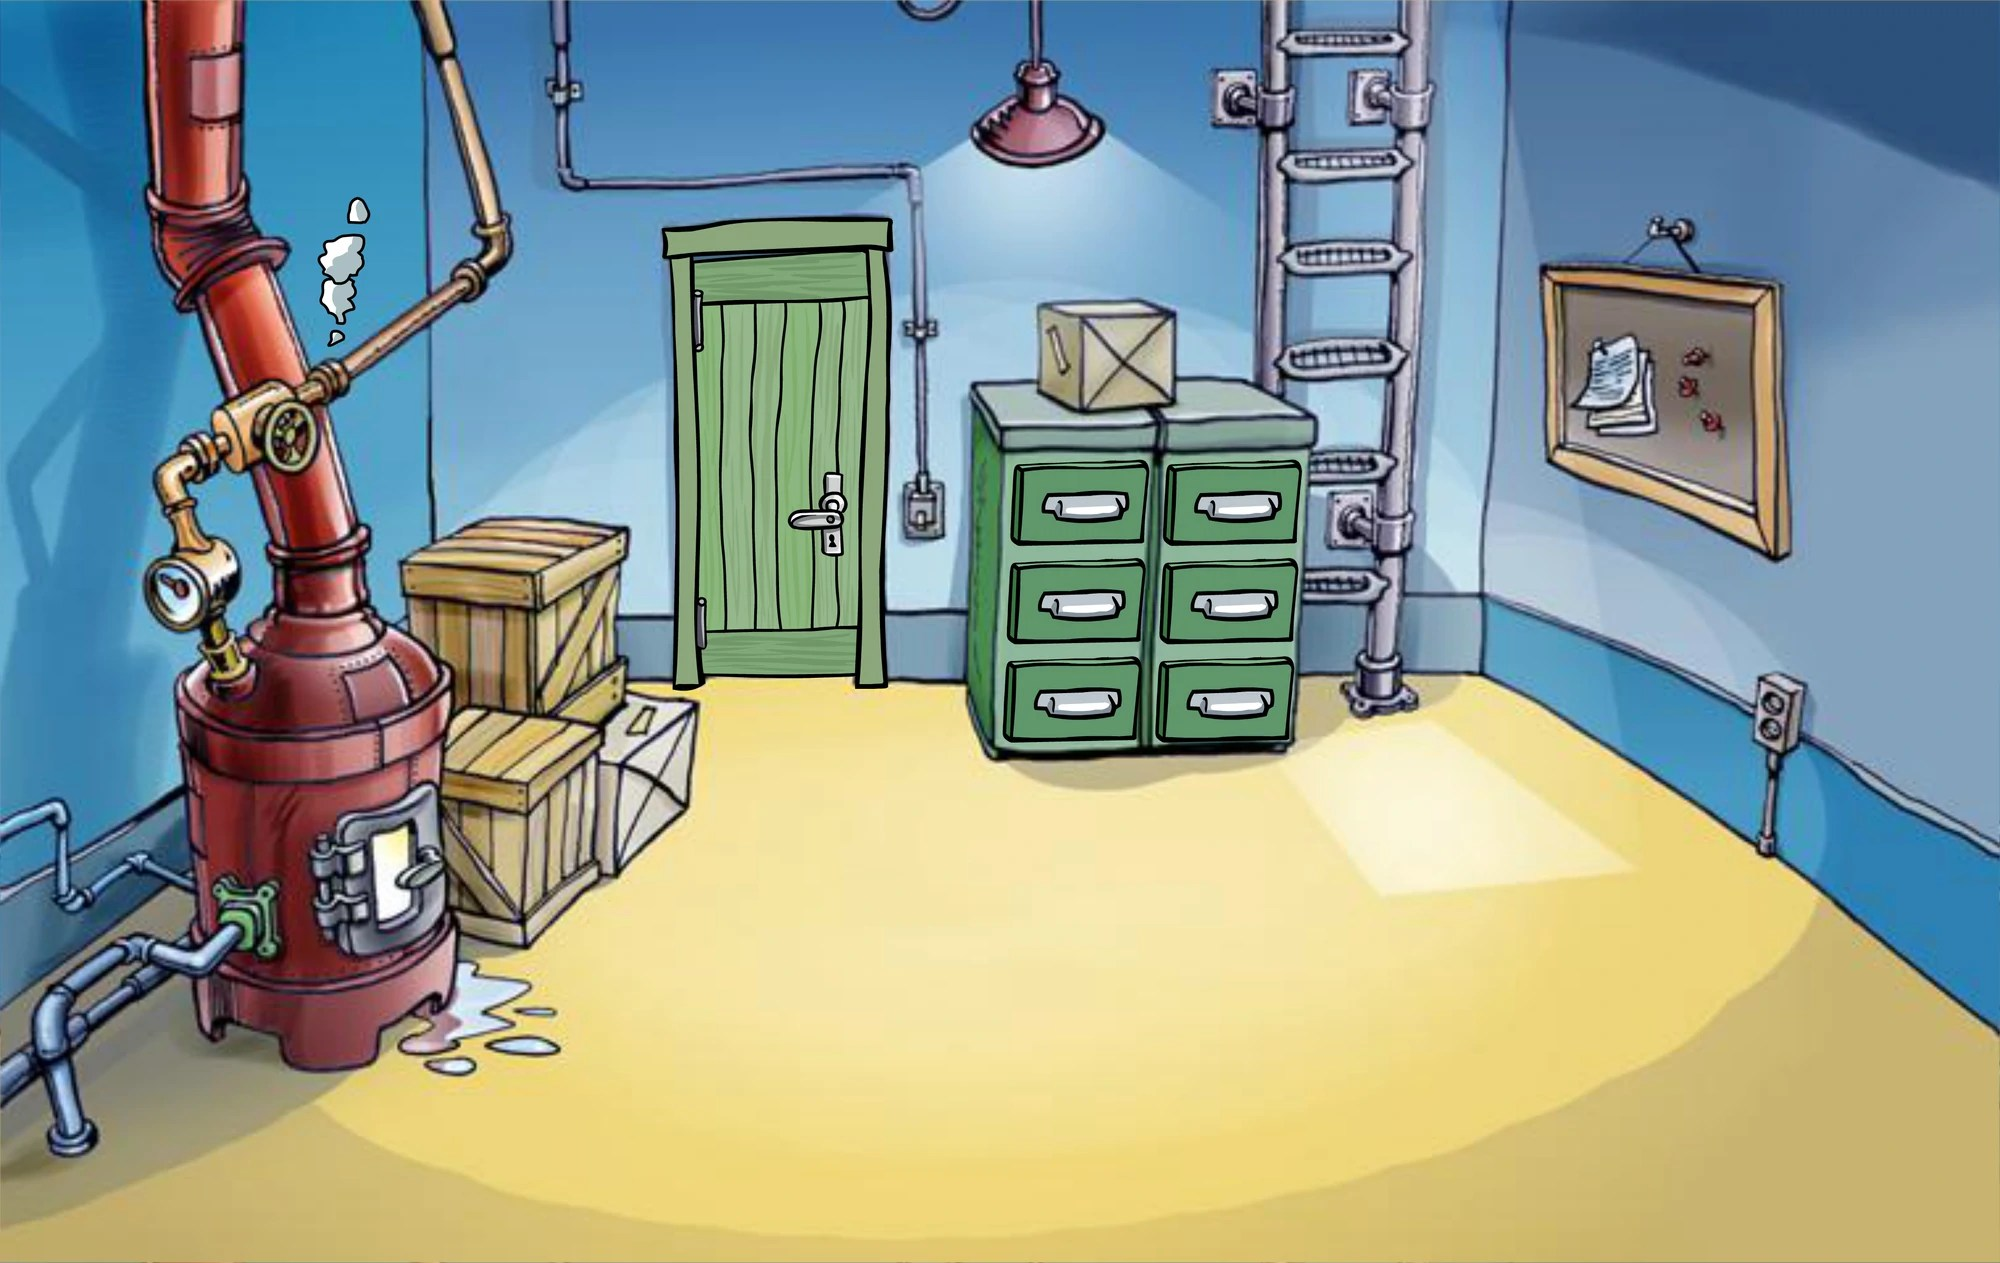 small resolution of fuse box in club penguin mission 3